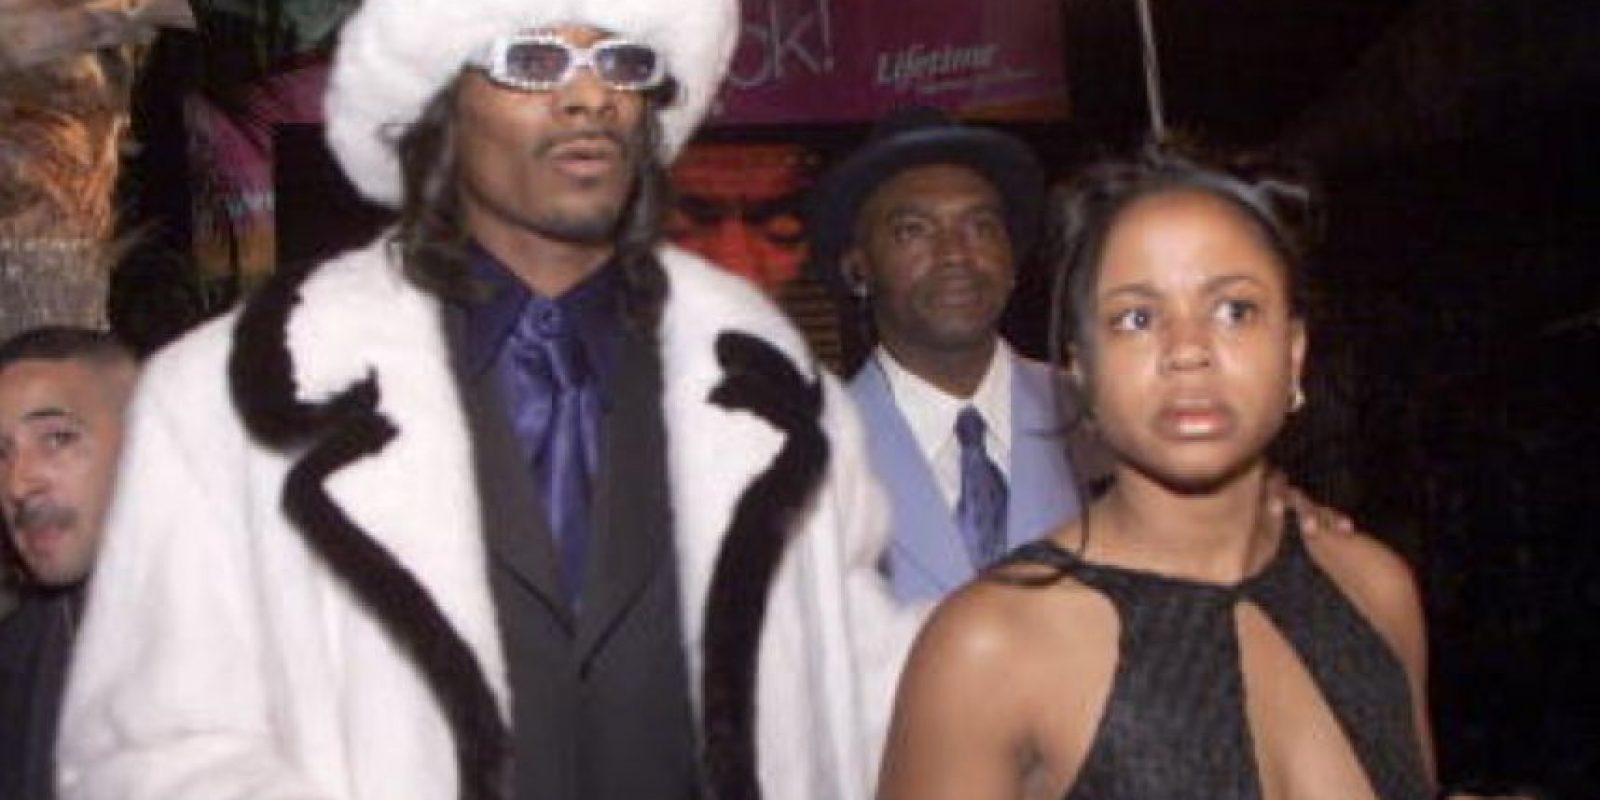 Snoop Dogg está casado con Shante Broadus desde 1997. Foto: vía Getty Images